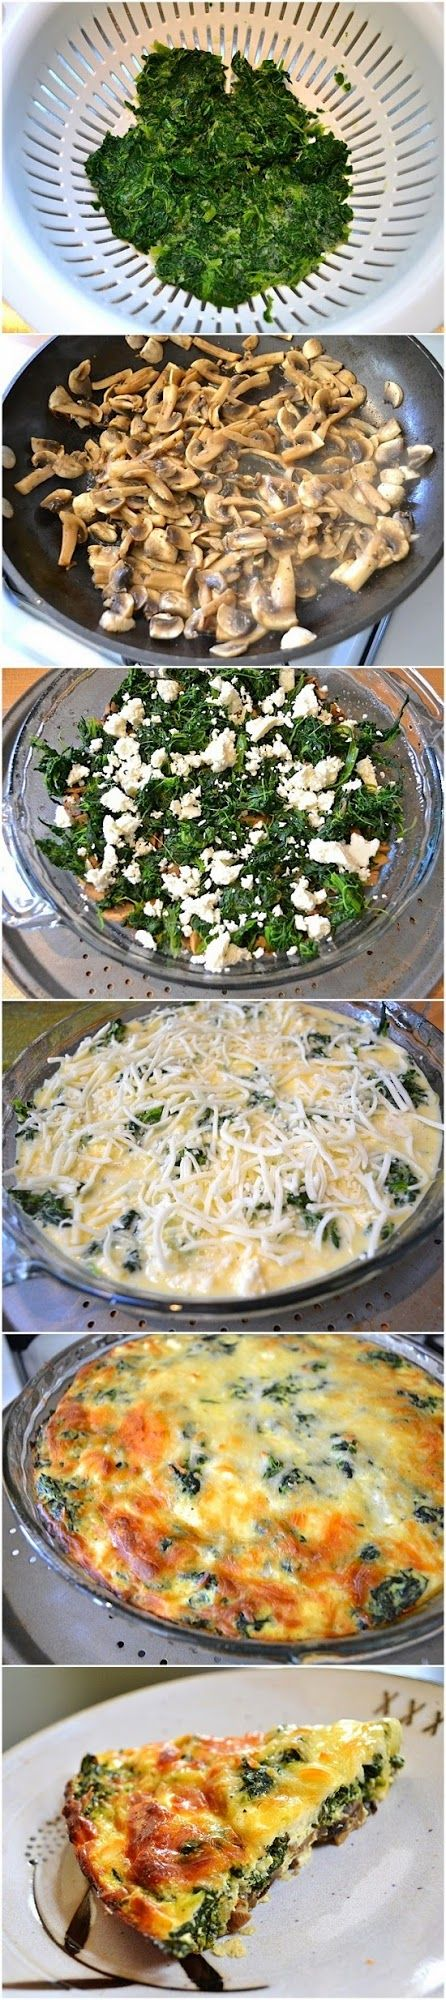 doing this, using fresh spinach, green onion, gargonzola, mushrooms, broccli and some peppers. Cutting into smaller squares. Spinach, Mushroom Feta Crustless Quiche. I added ham and used 6 eggs. It was delicious!